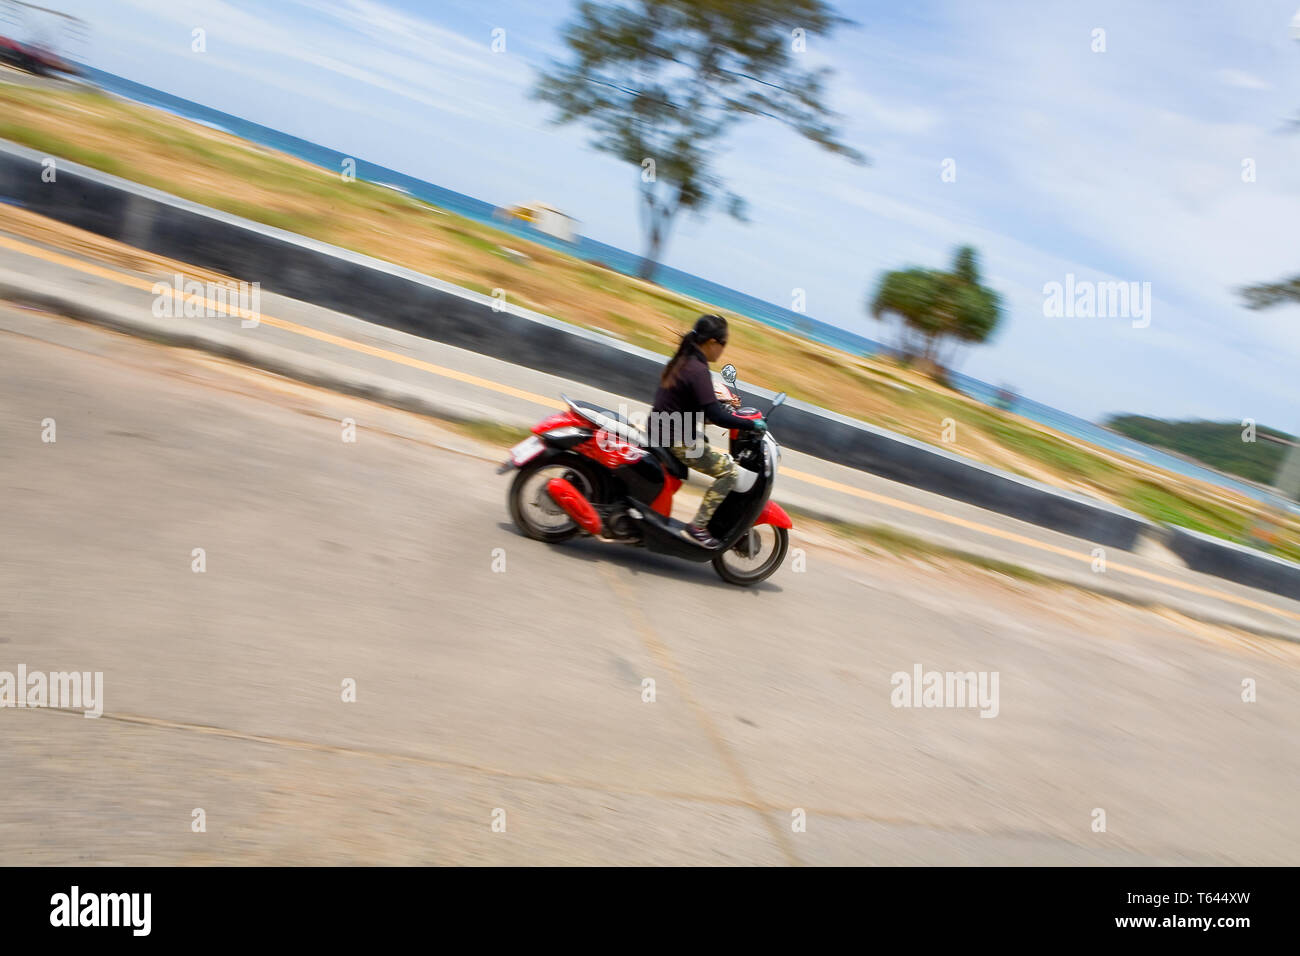 Karon, Thailand, February 20, 2018: East Asian woman riding at high speed on a scooter along the promenade. Dynamics and speed. - Stock Image